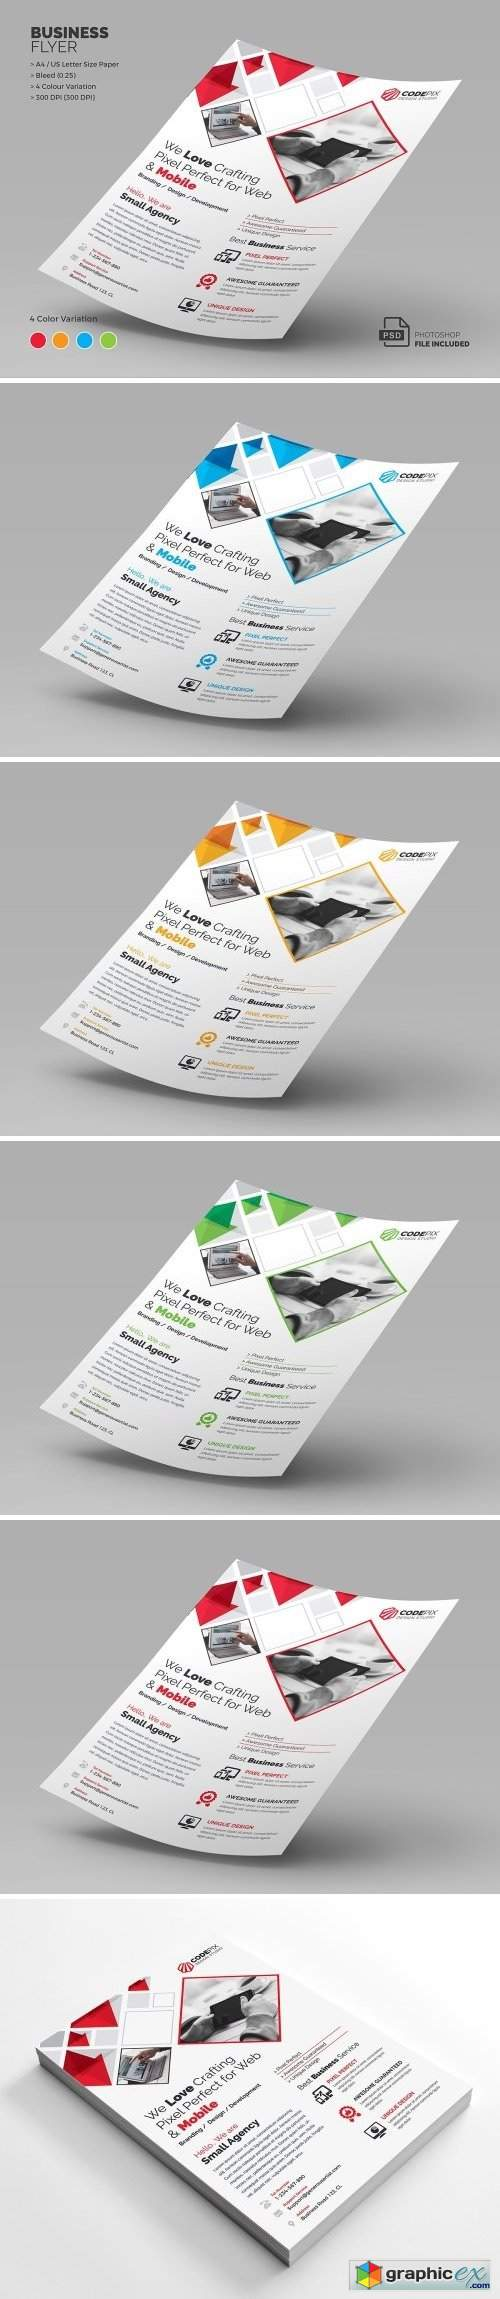 Business Flyer 2091585